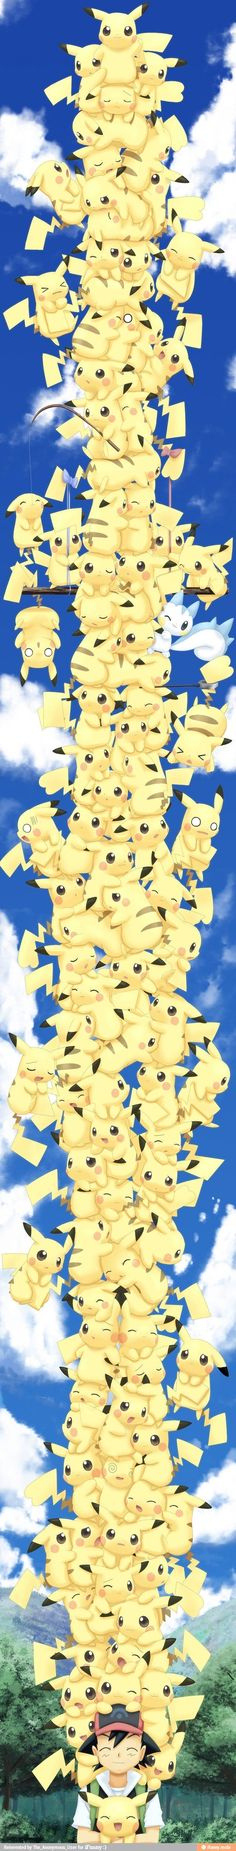 Attack of the Pikachus!